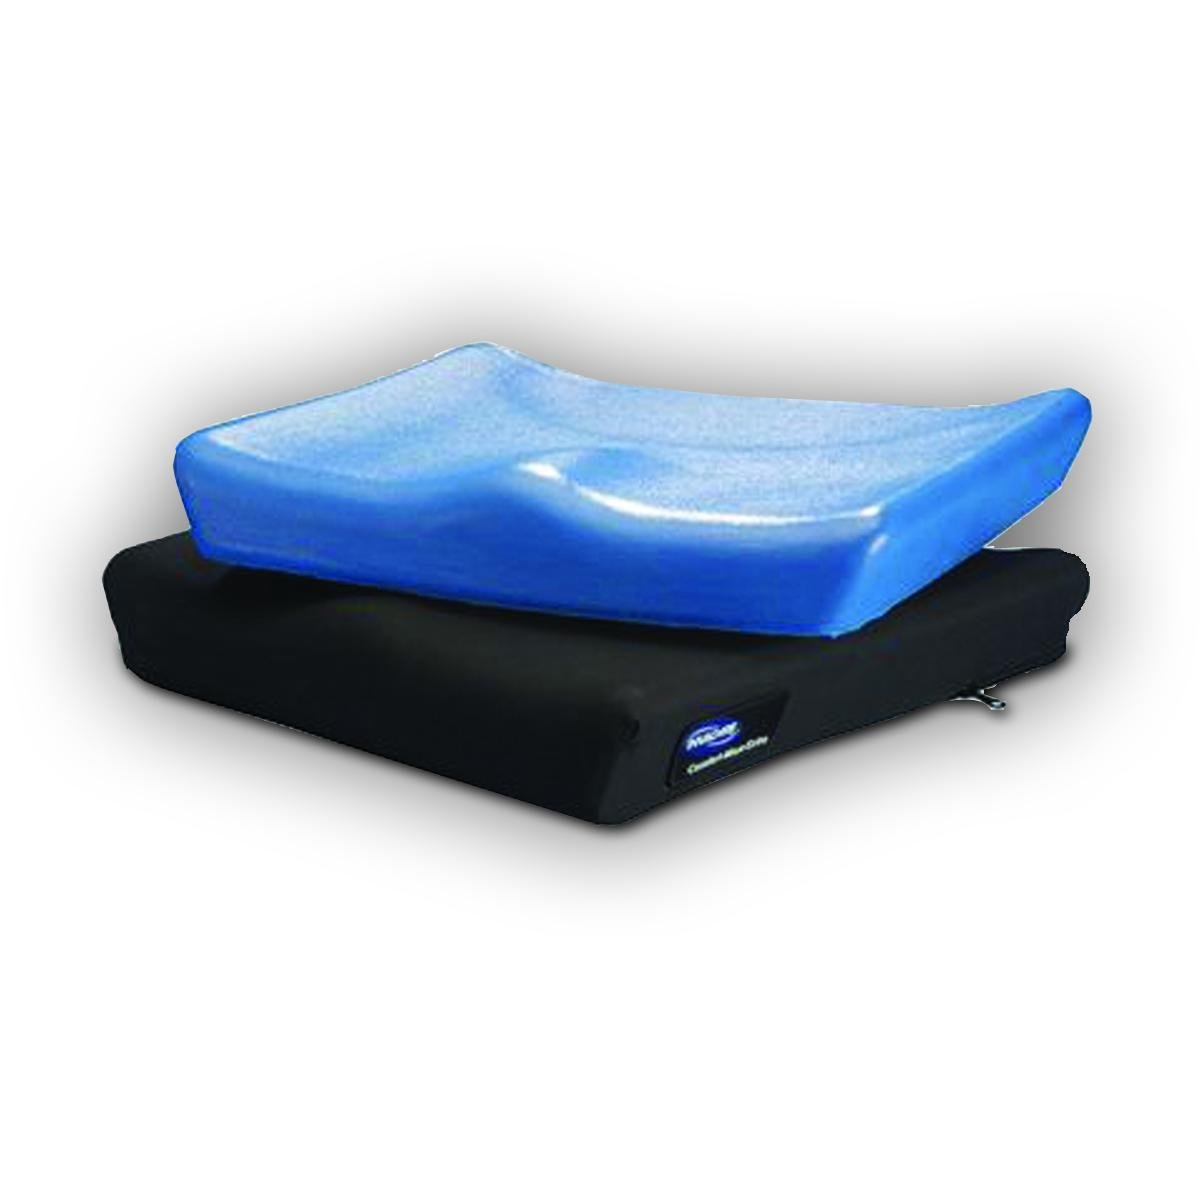 "Invacare Corporation Invcmexw16D16 Matrx Comfort-Mate Extra Cushion 16"" X 16"", Polyurethane Foam,Invacare Corporation - Each 1"